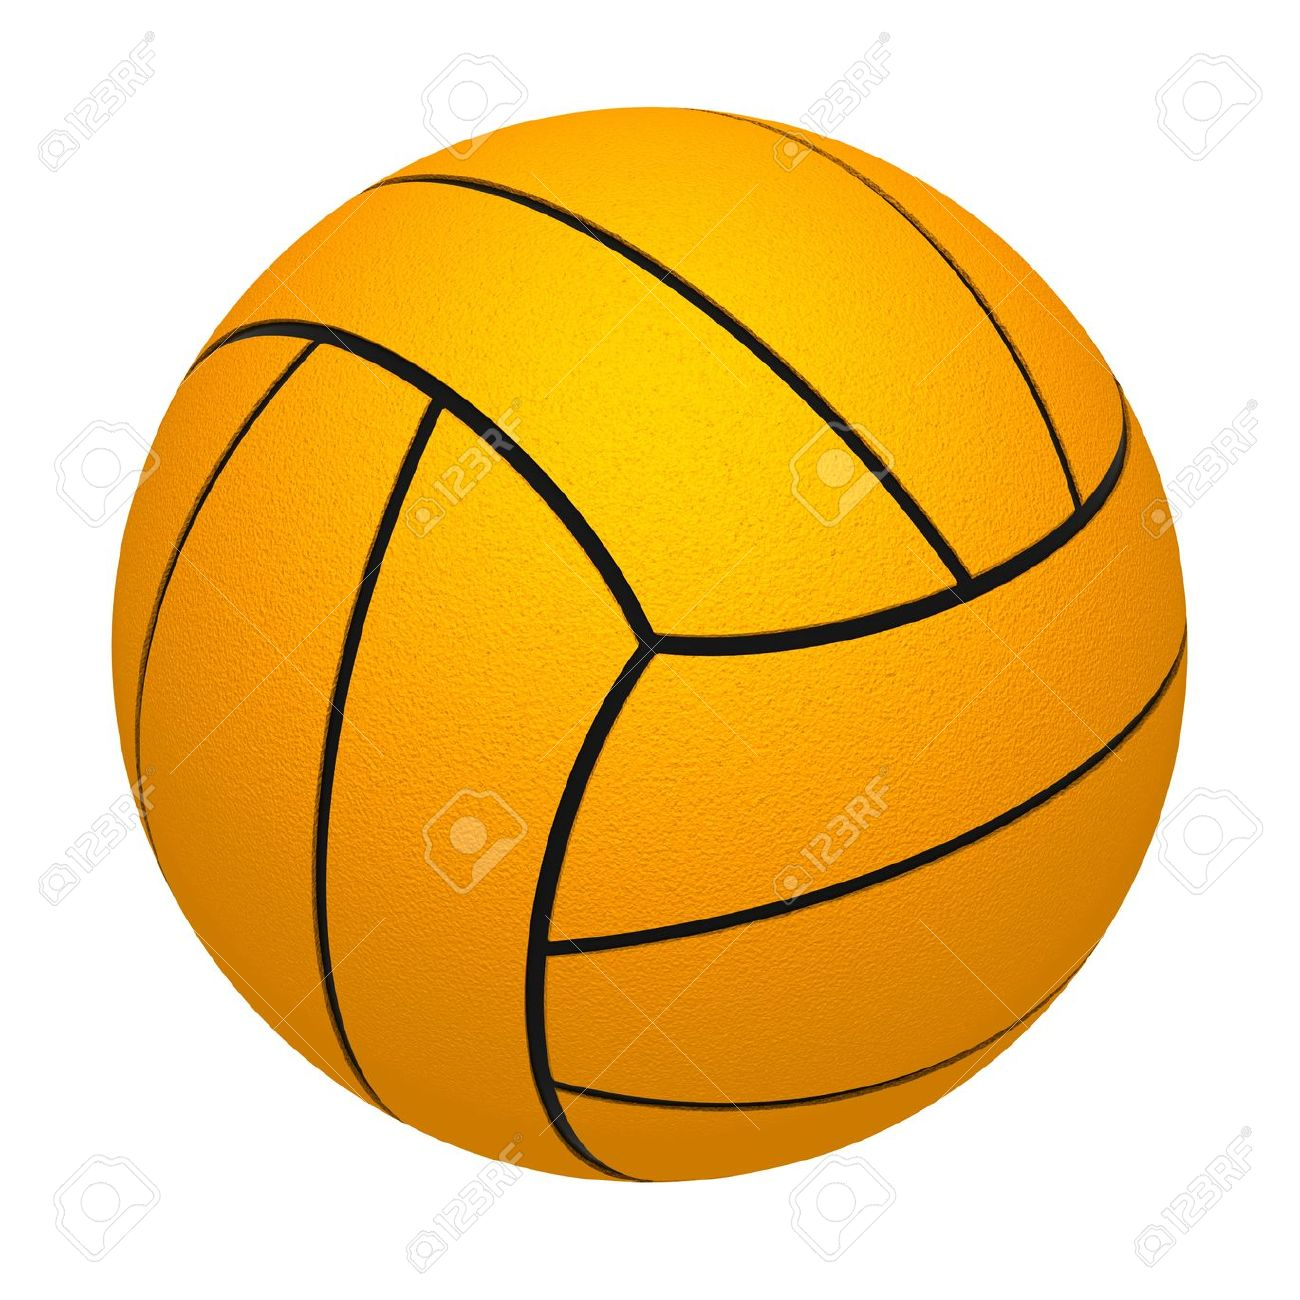 water polo ball clip art   look at water polo ball clip Swim Party Clip Art Water Polo Ball Outline